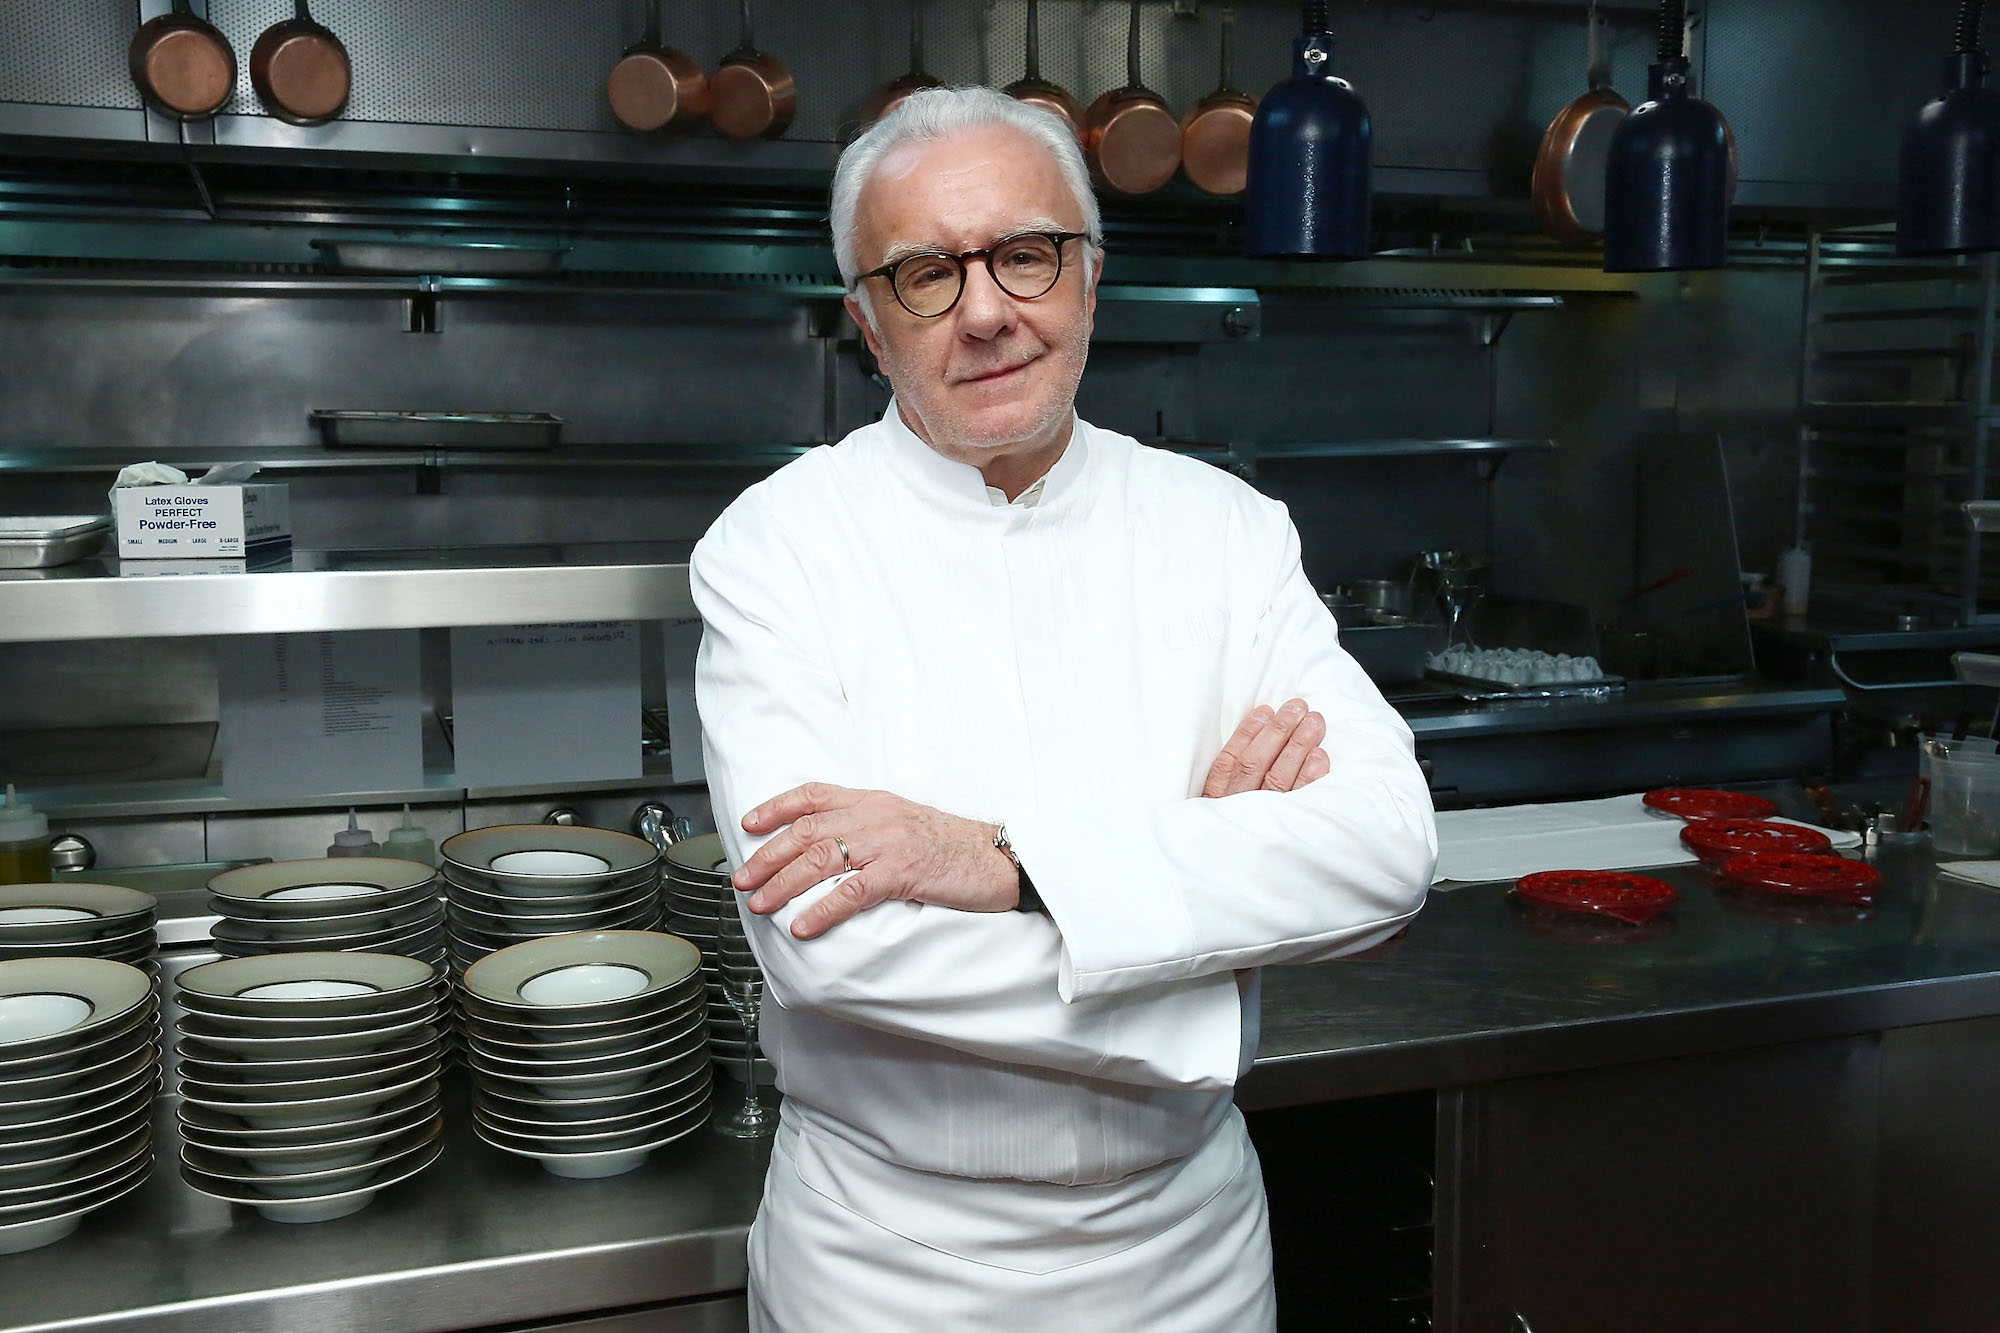 Alain Ducasse owns the most Michelin stars in the world